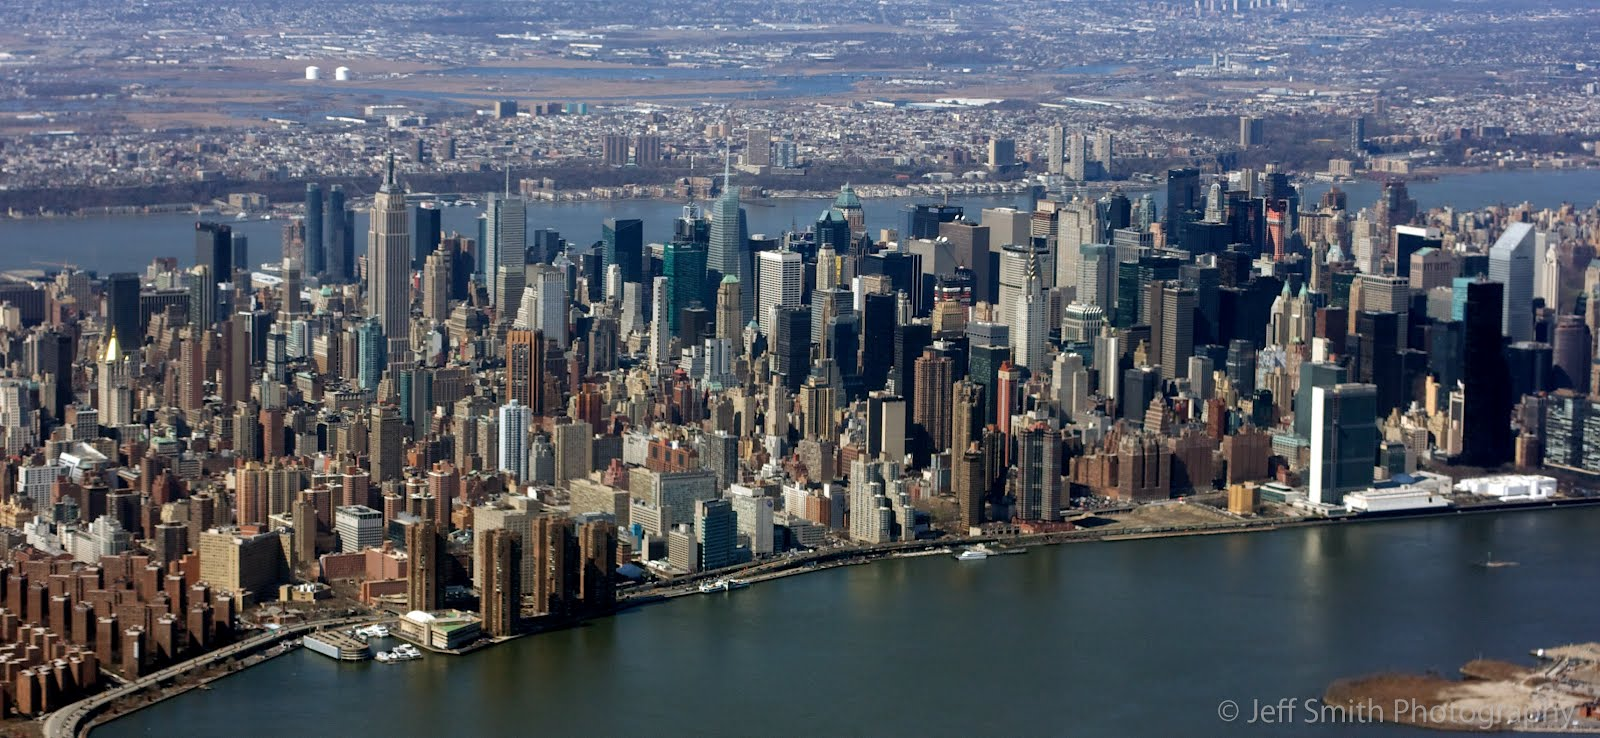 AMAZING Pics of Manhattan! - SkyscraperCity